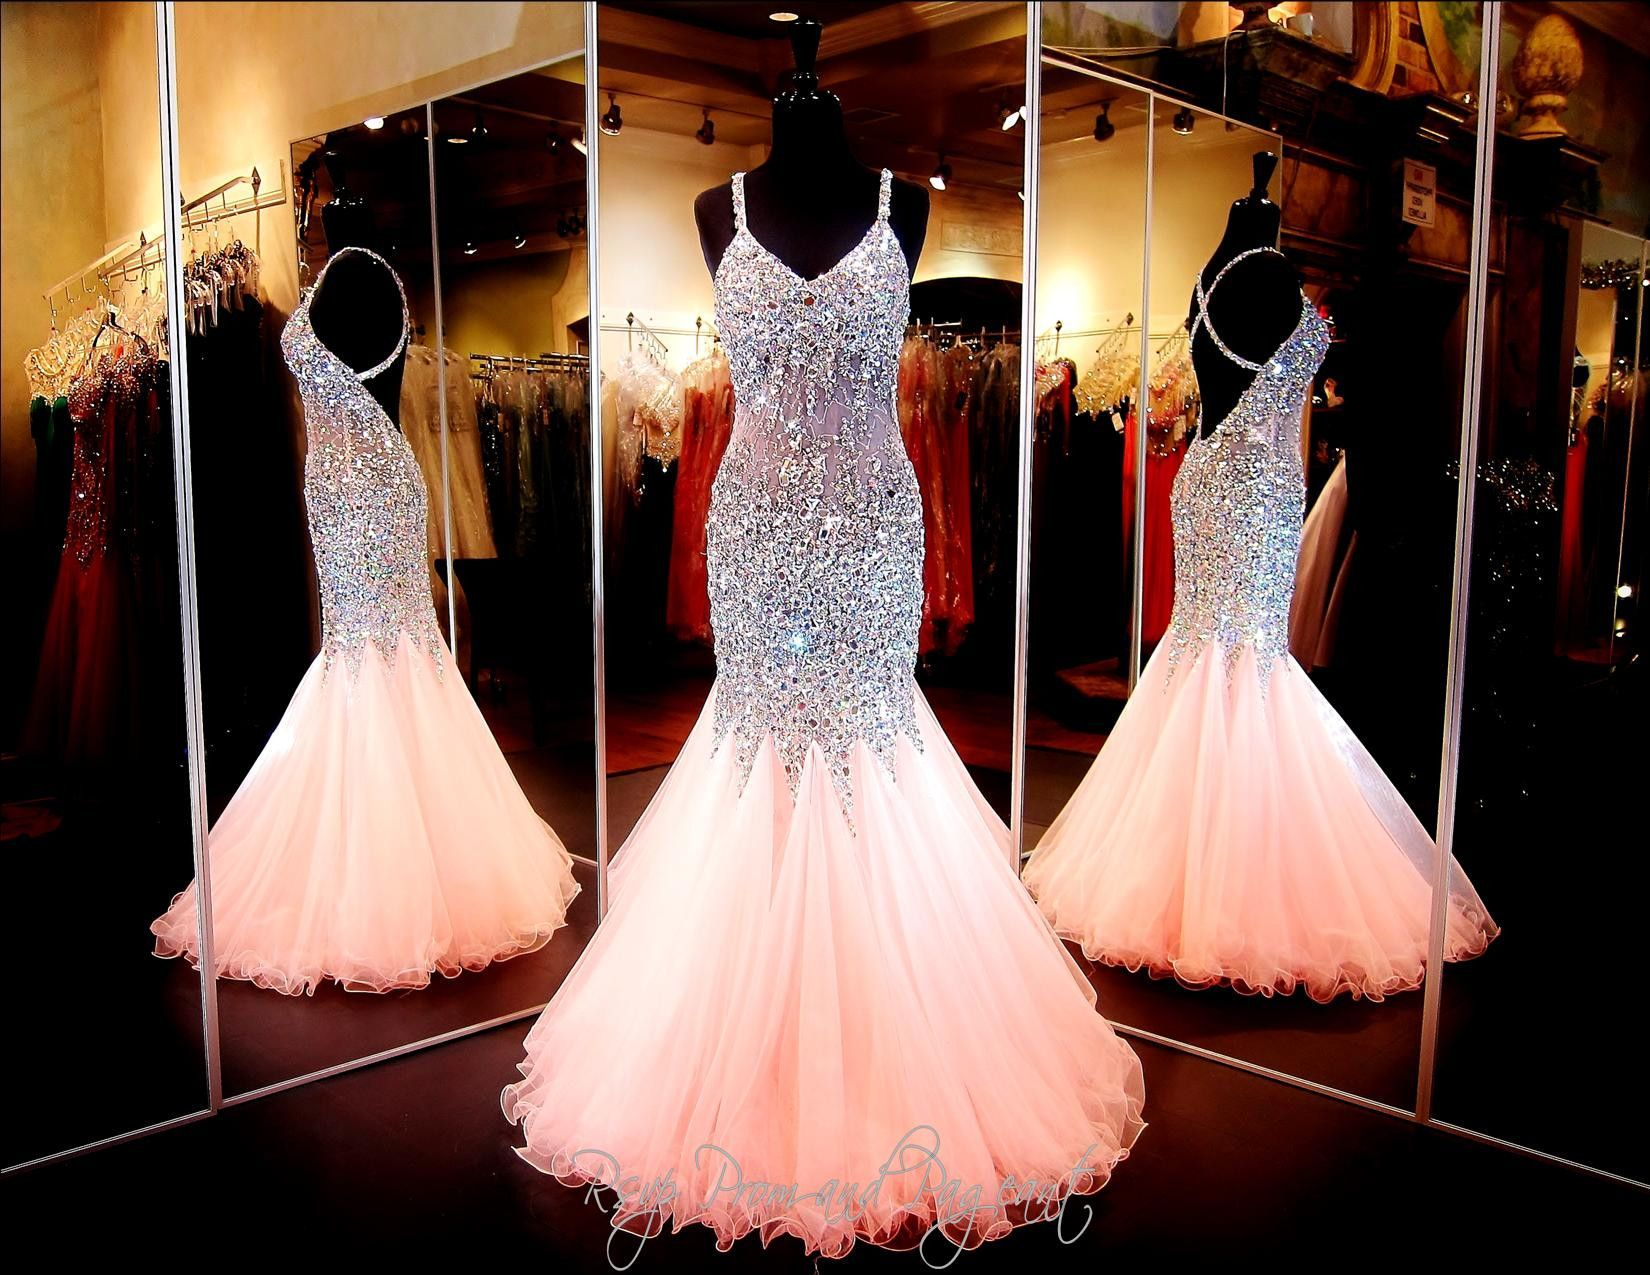 Coral Beaded Mermaid Prom Dress Open Back Only At Rsvp Prom And Pageant Atlanta Ga With Images Pink Prom Dresses Sparkly Prom Dresses Evening Dresses Prom